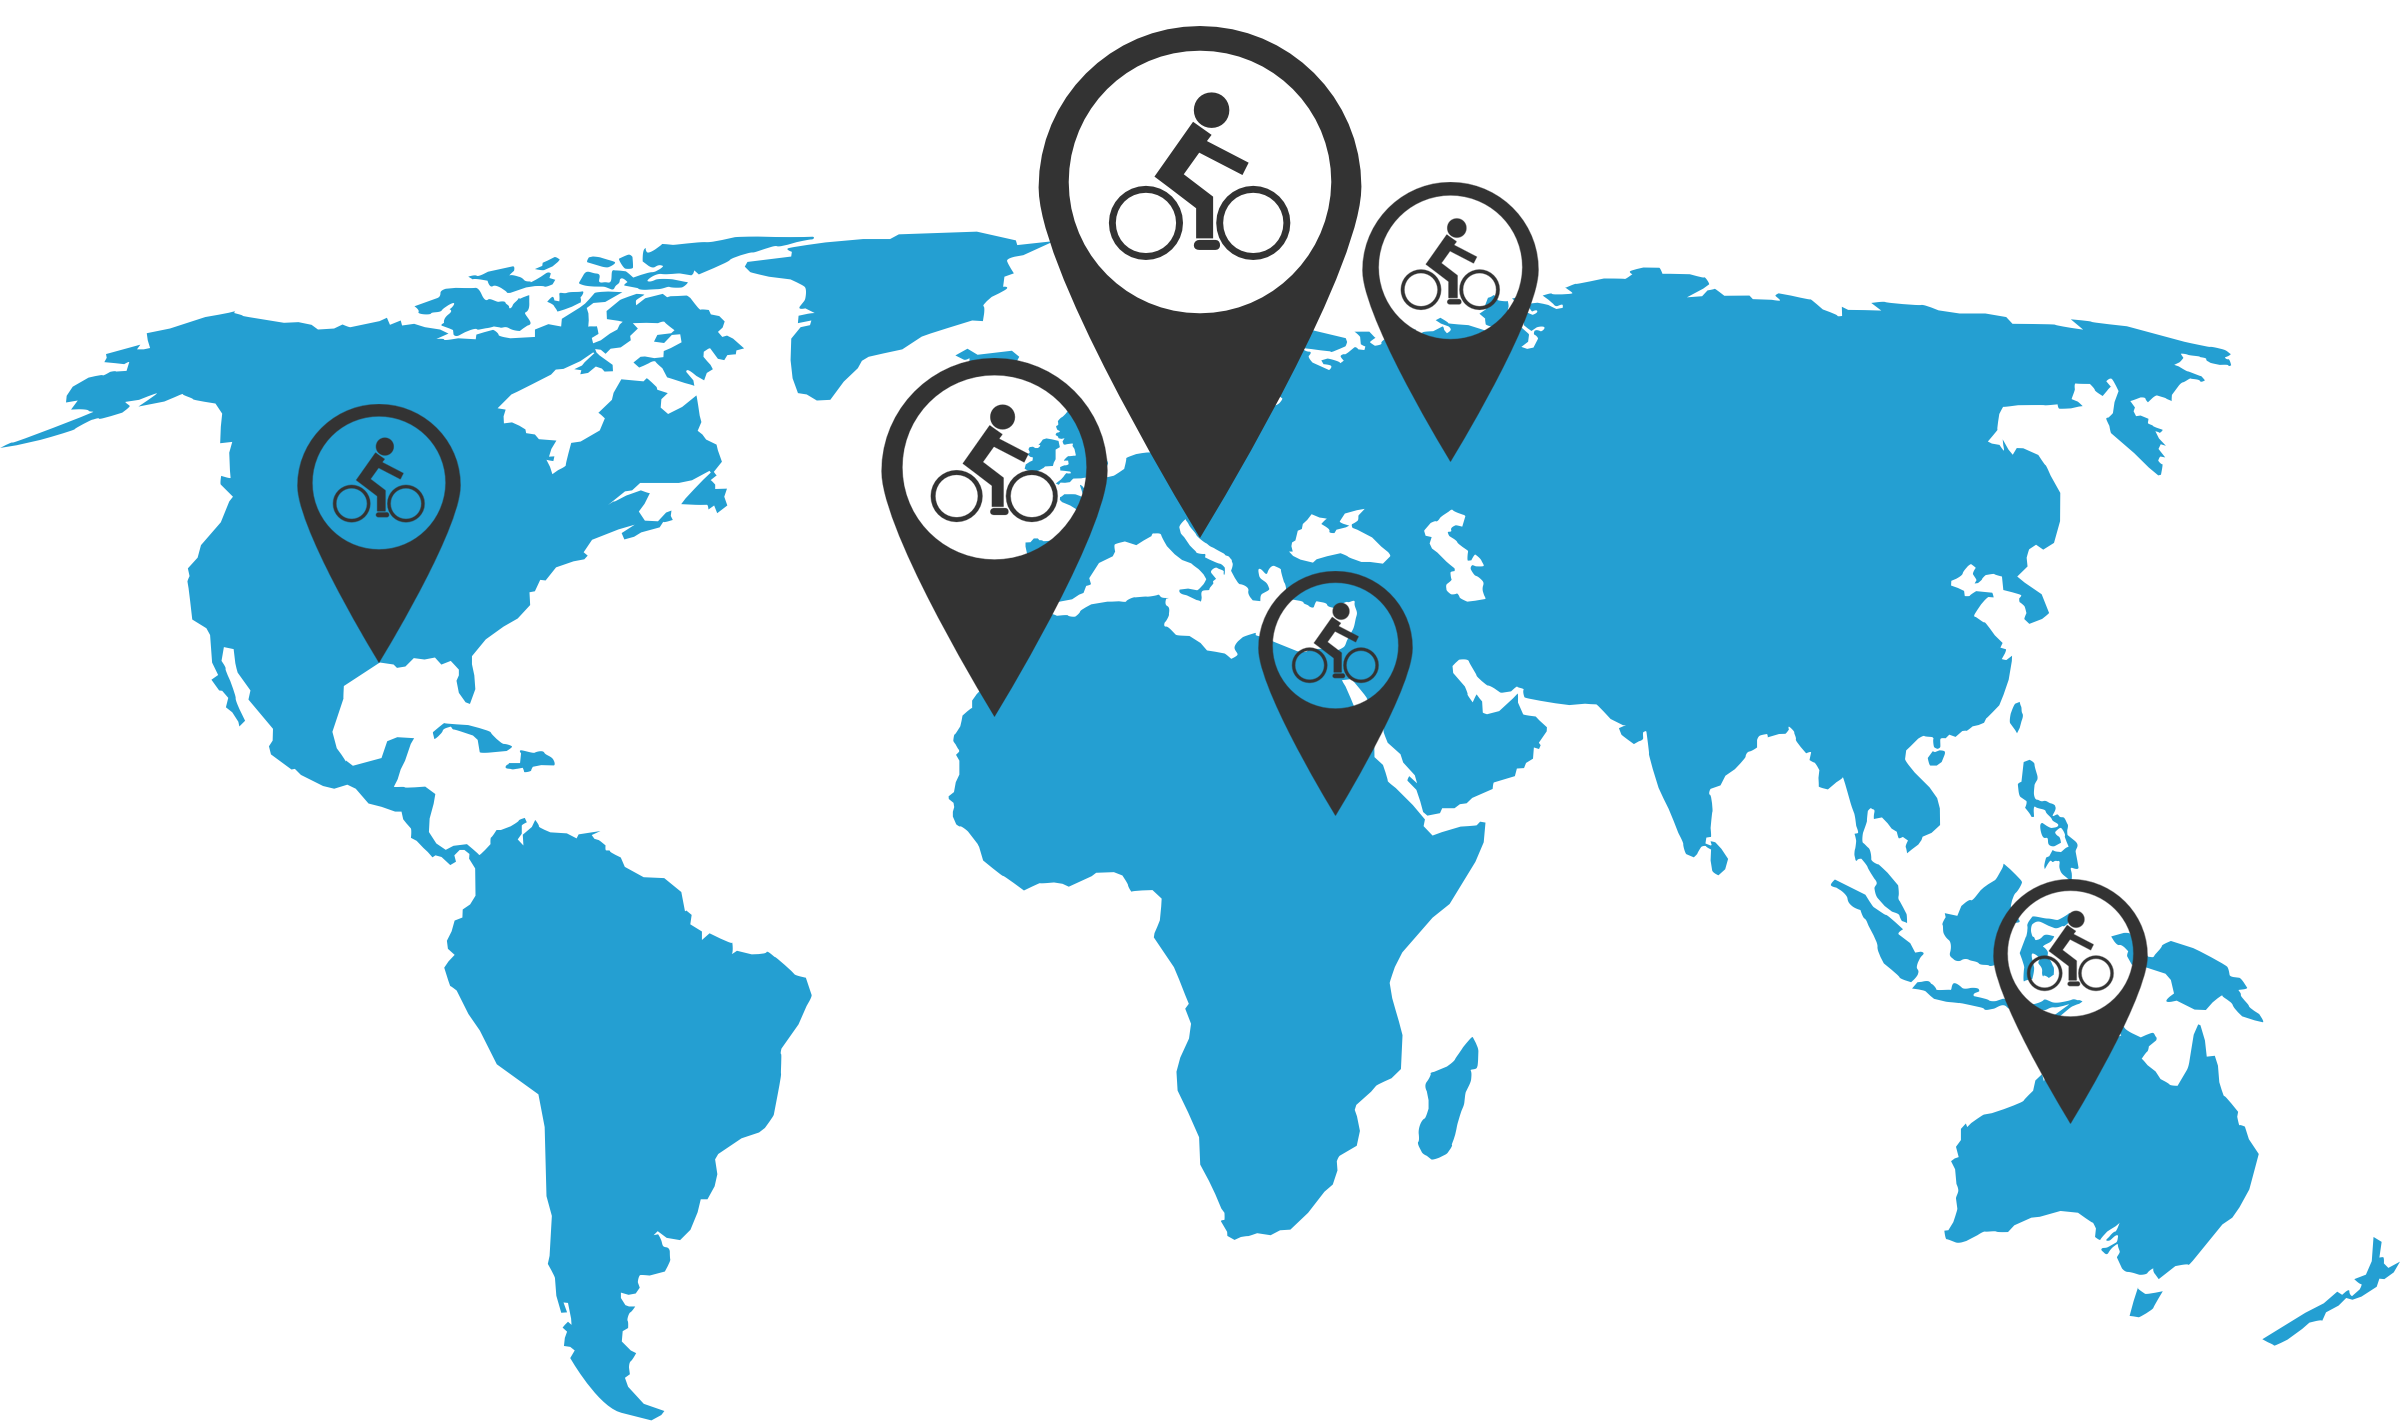 Bikedesk customers over the world